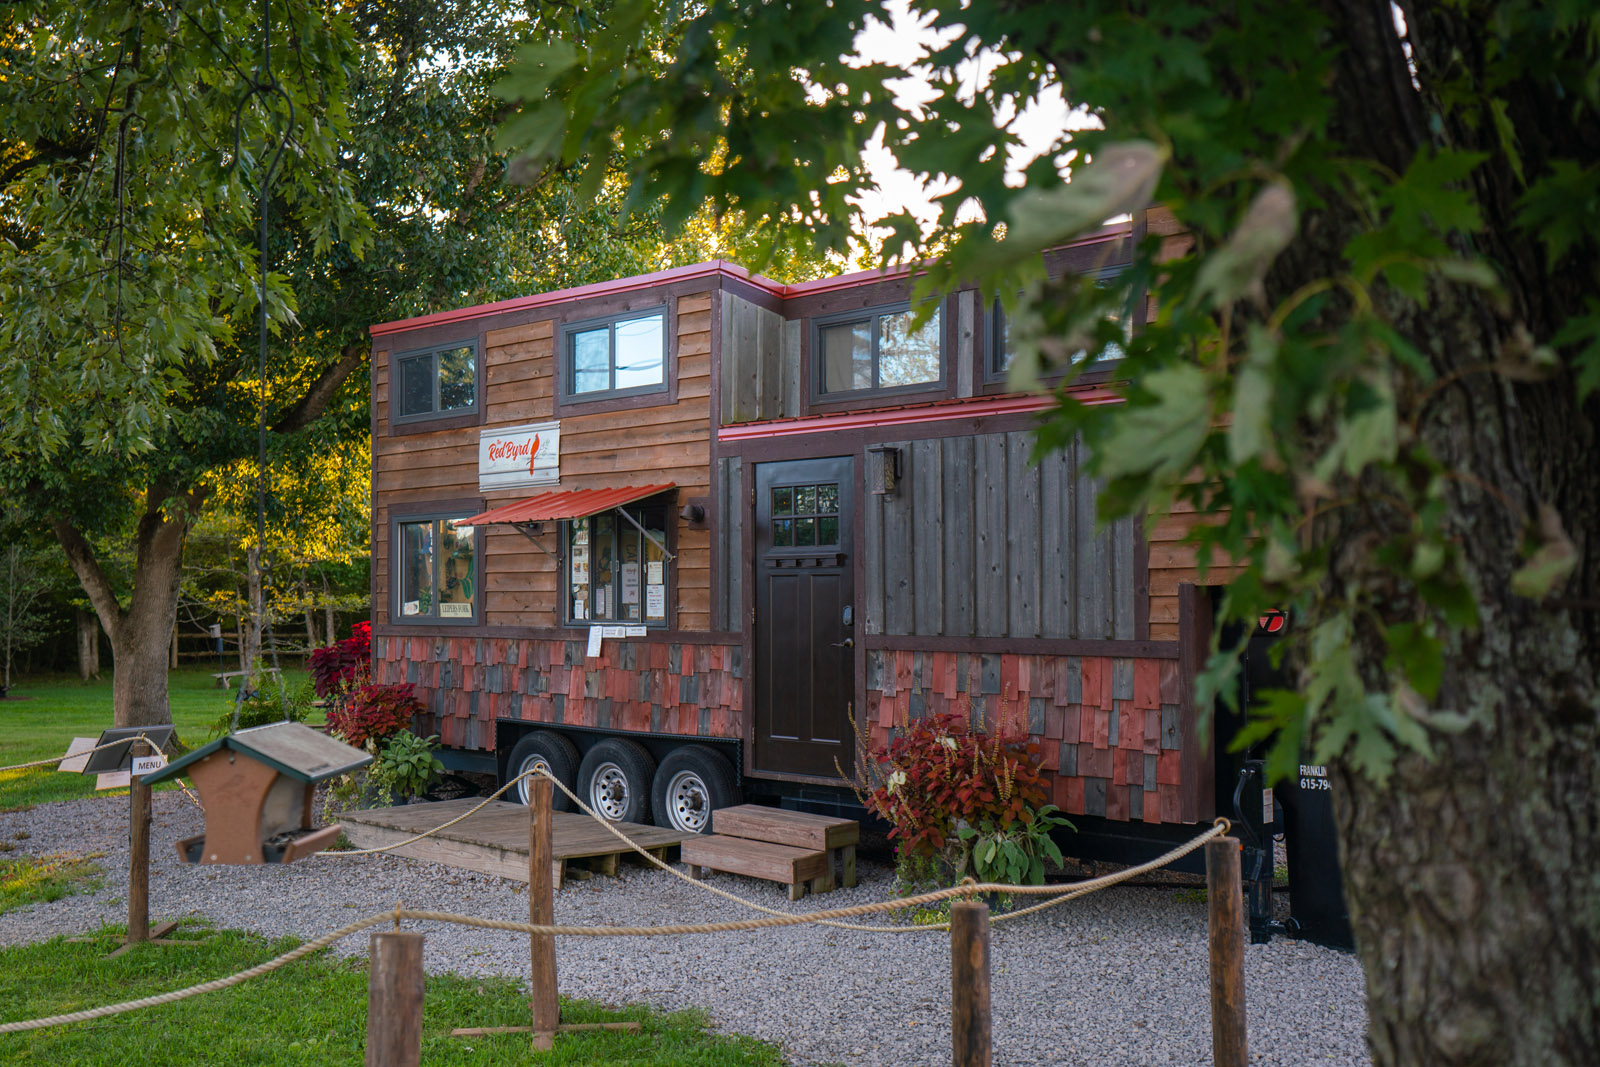 RedByrd coffee shop at leipers fork market in tennessee in a tiny house